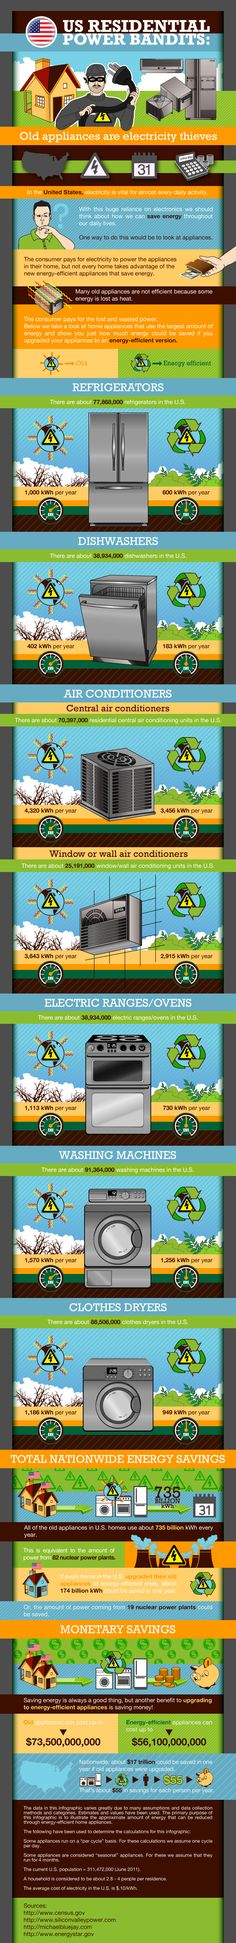 US Residential Power Bandits: This infographic shows how much energy is used in old appliances versus new and energy efficient ones.